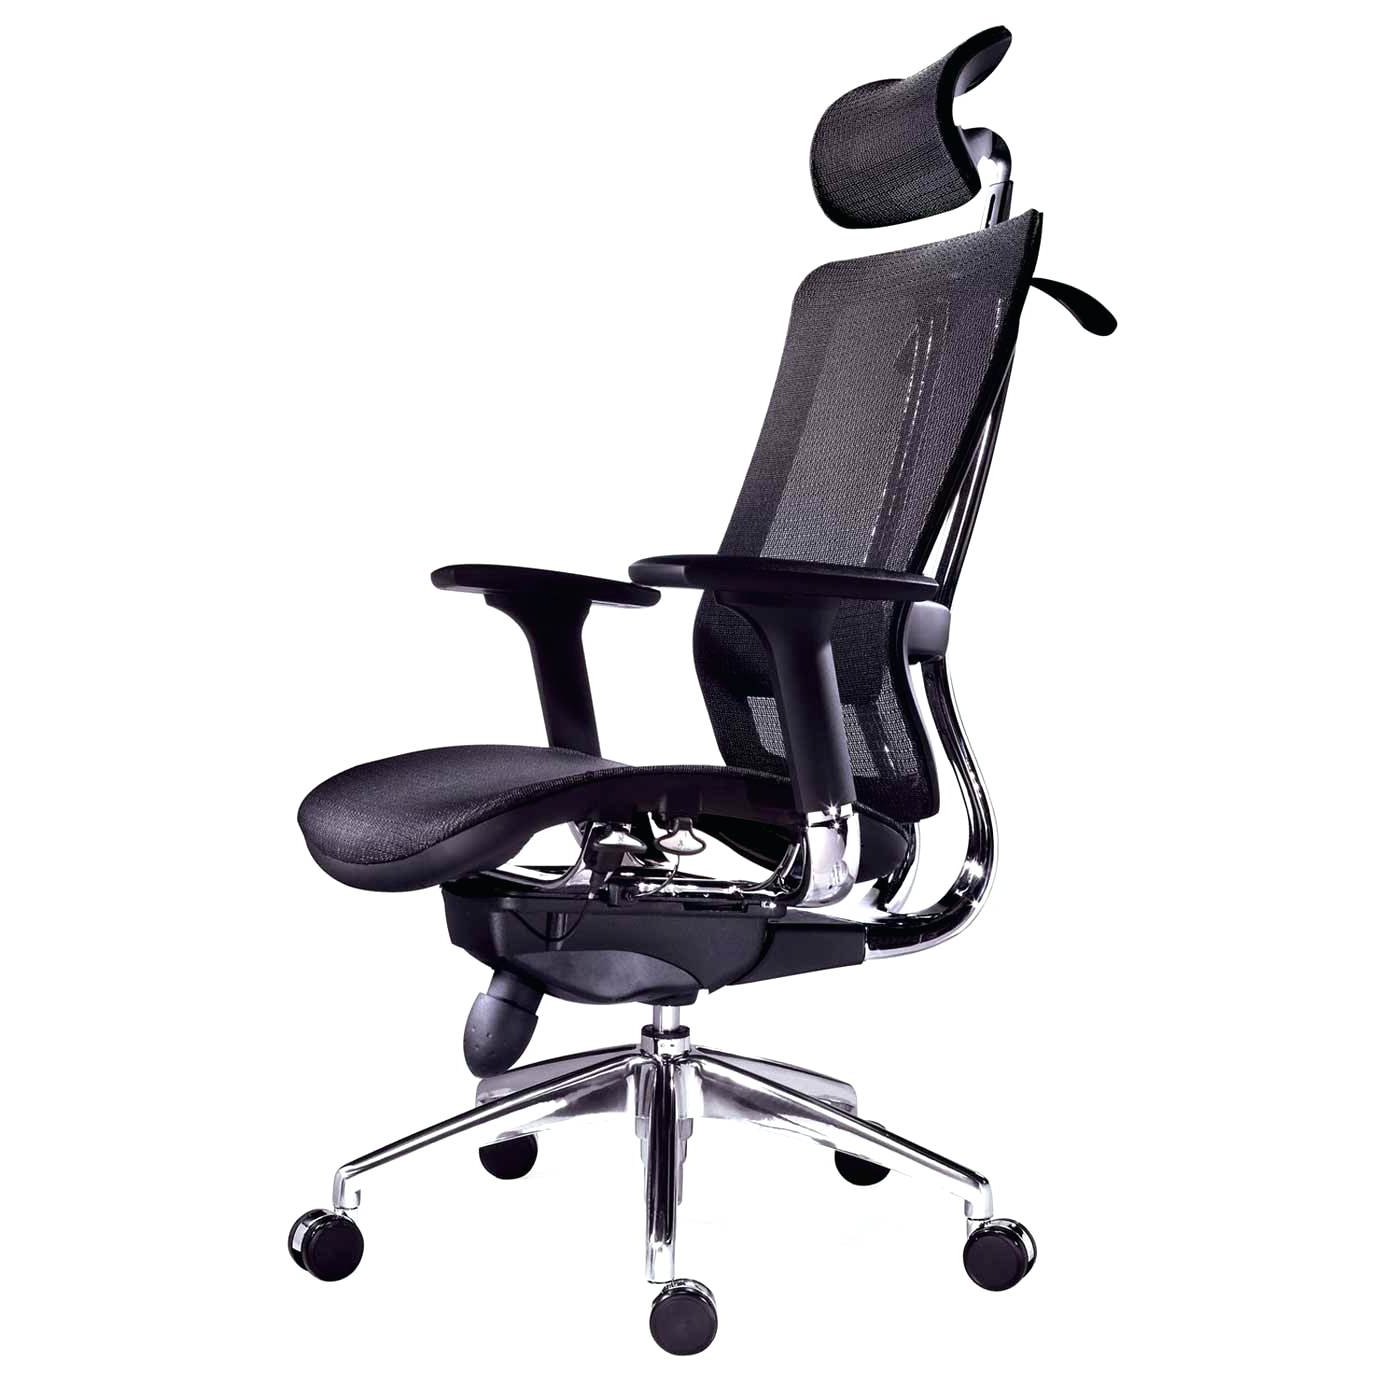 Amazing 5 Pick Miller Office Chair Best Mesh Office Chair With Most Recent Petite Executive Office Chairs (View 5 of 20)